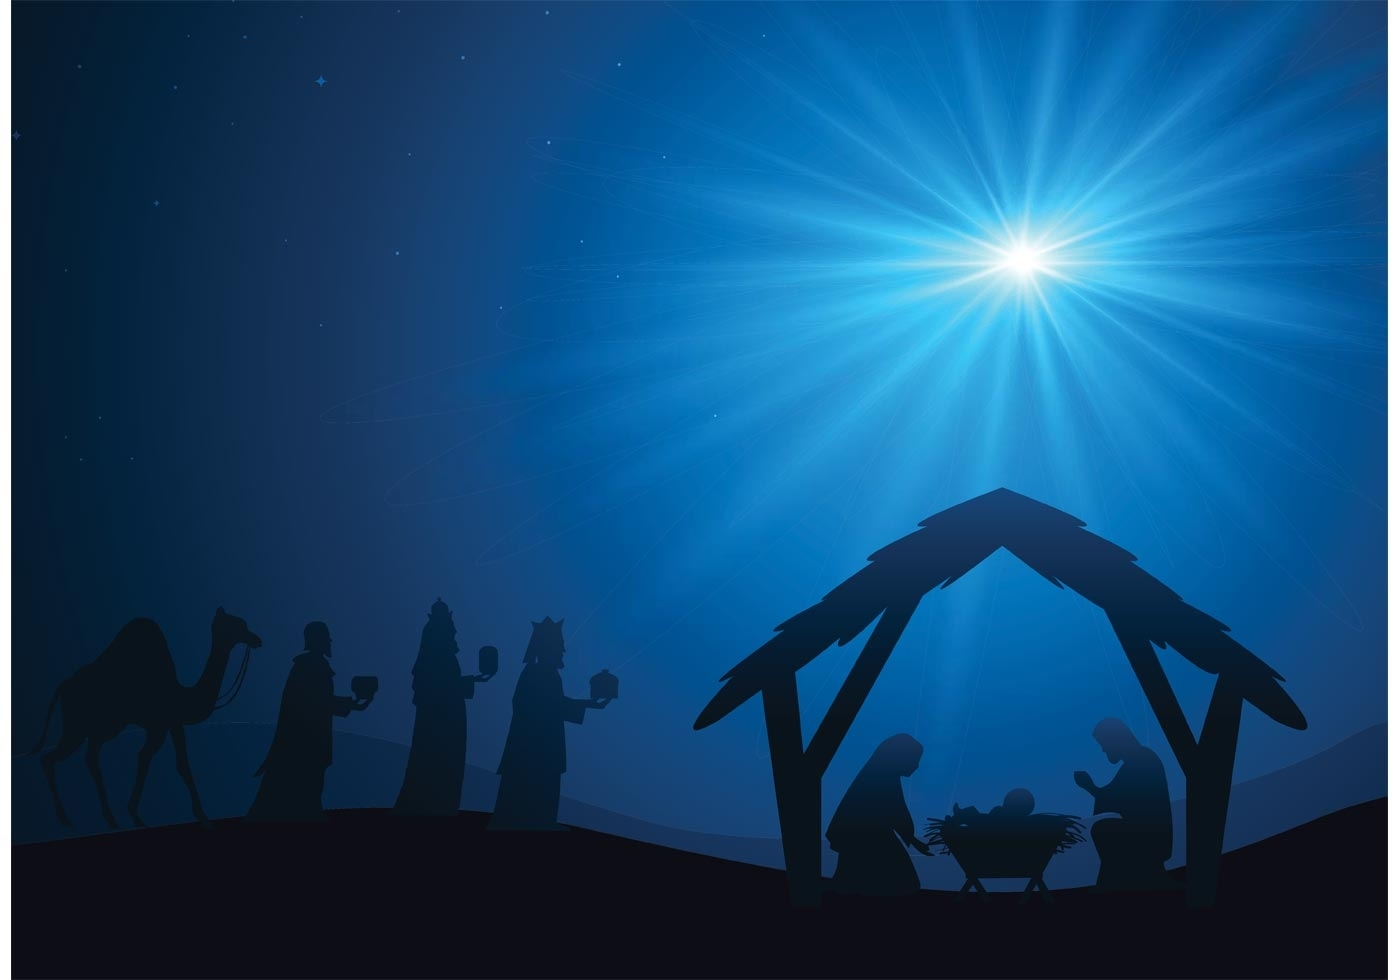 manger scene vector background - download free vector art, stock